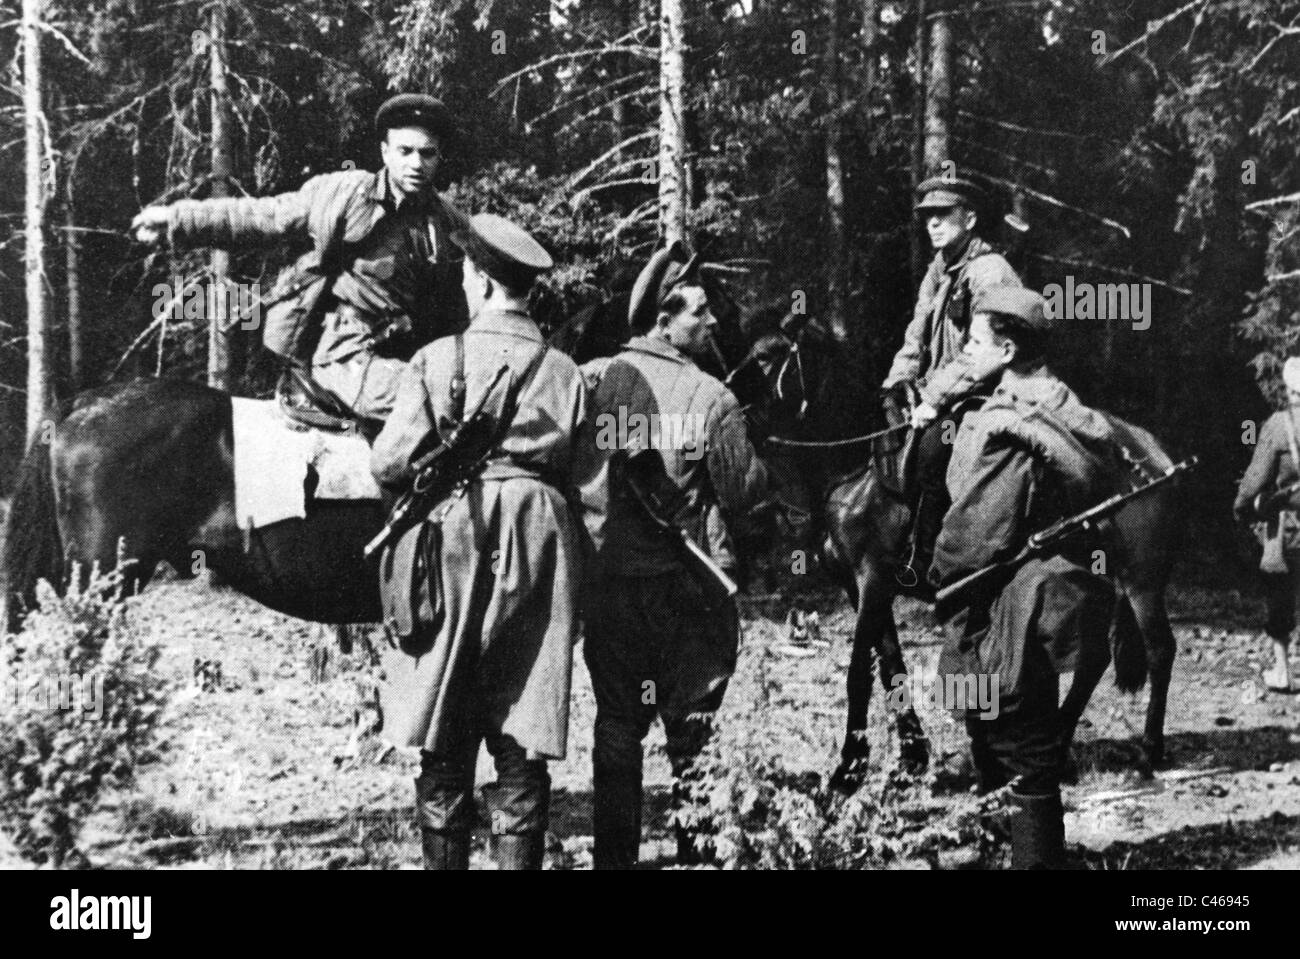 Second World War: Russian partisans in occupied Soviet Union - Stock Image